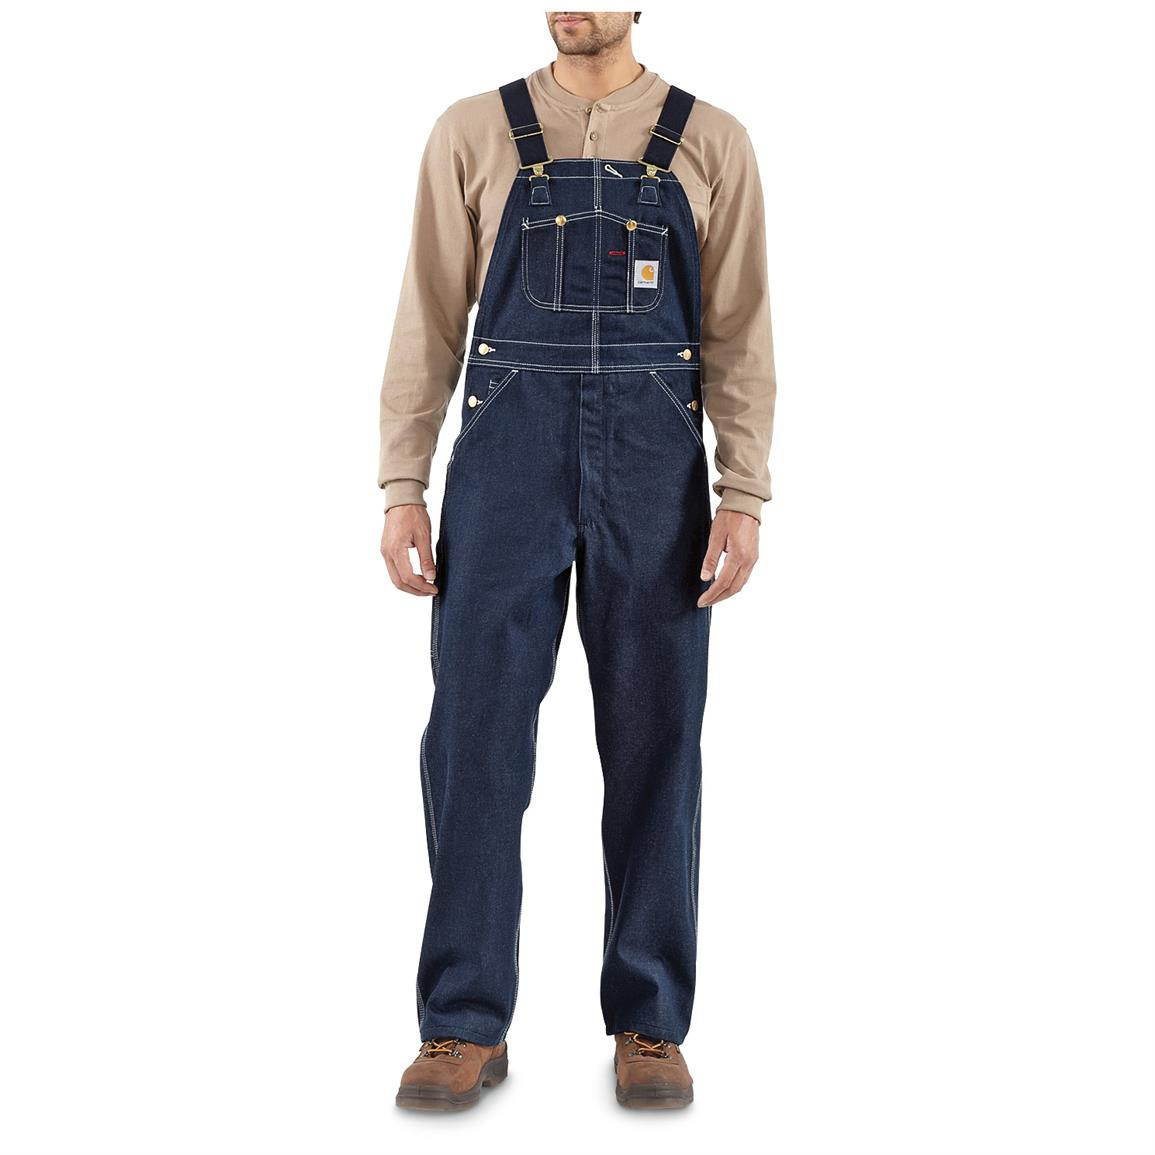 Carhartt Men's Denim Bib Overalls, Denim